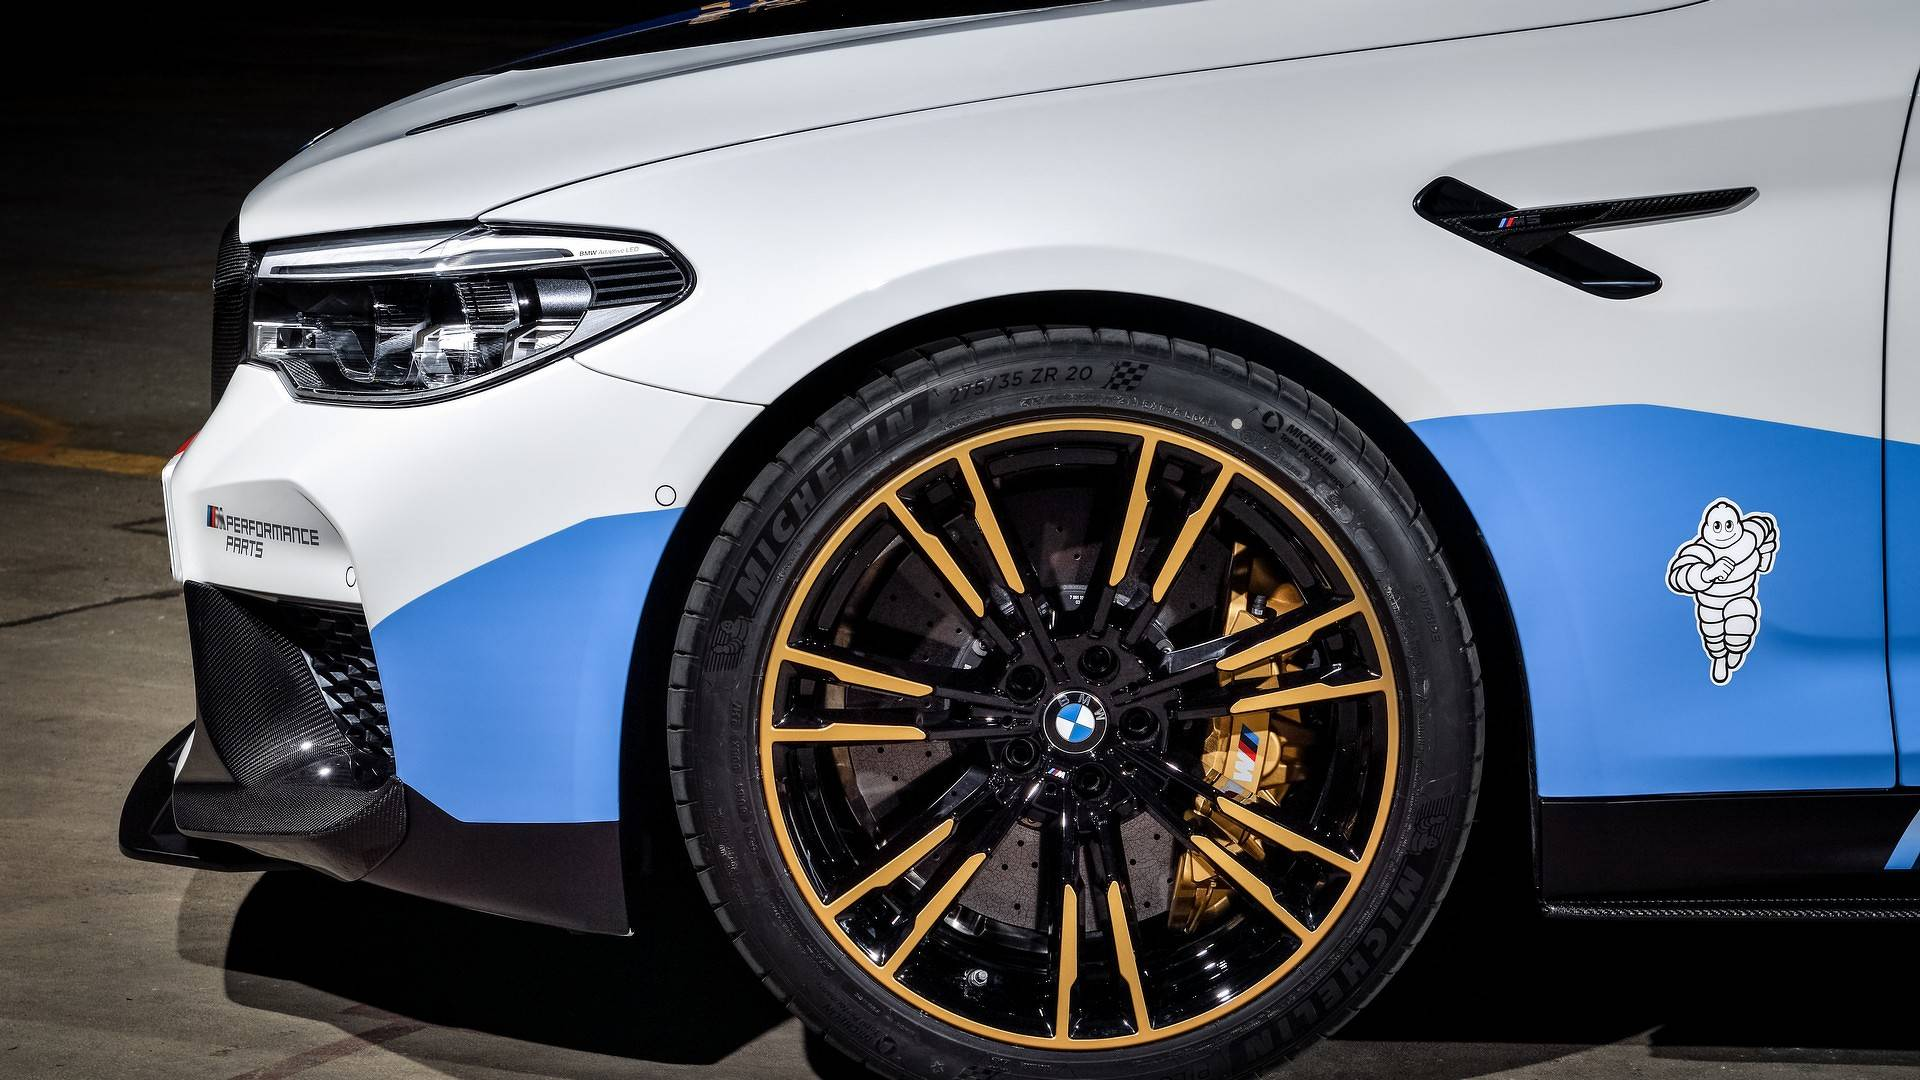 bmw-m5-motogp-safety-car (29)